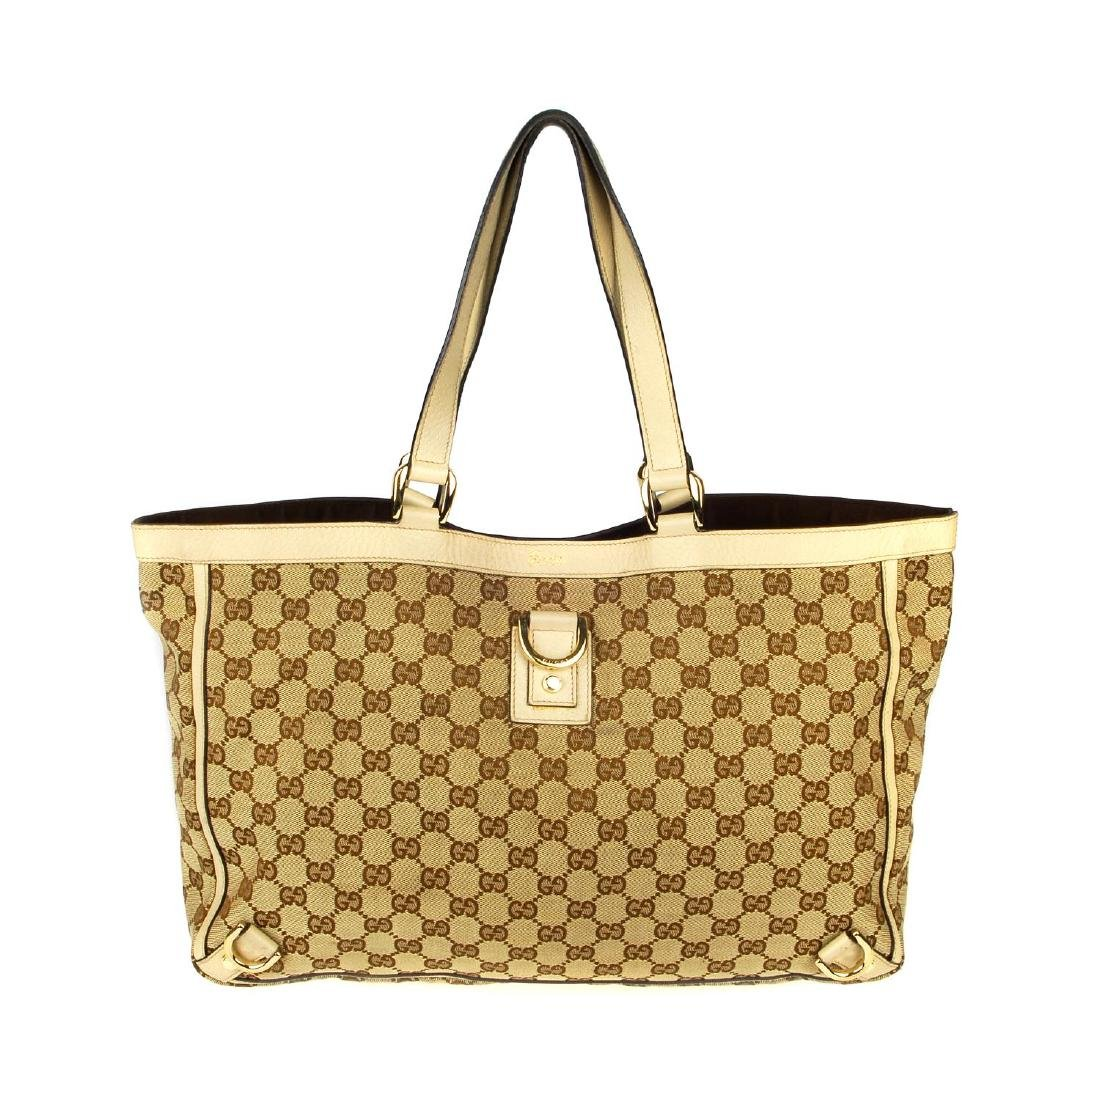 GUCCI - an Abbey handbag. Crafted of maker's GG beige